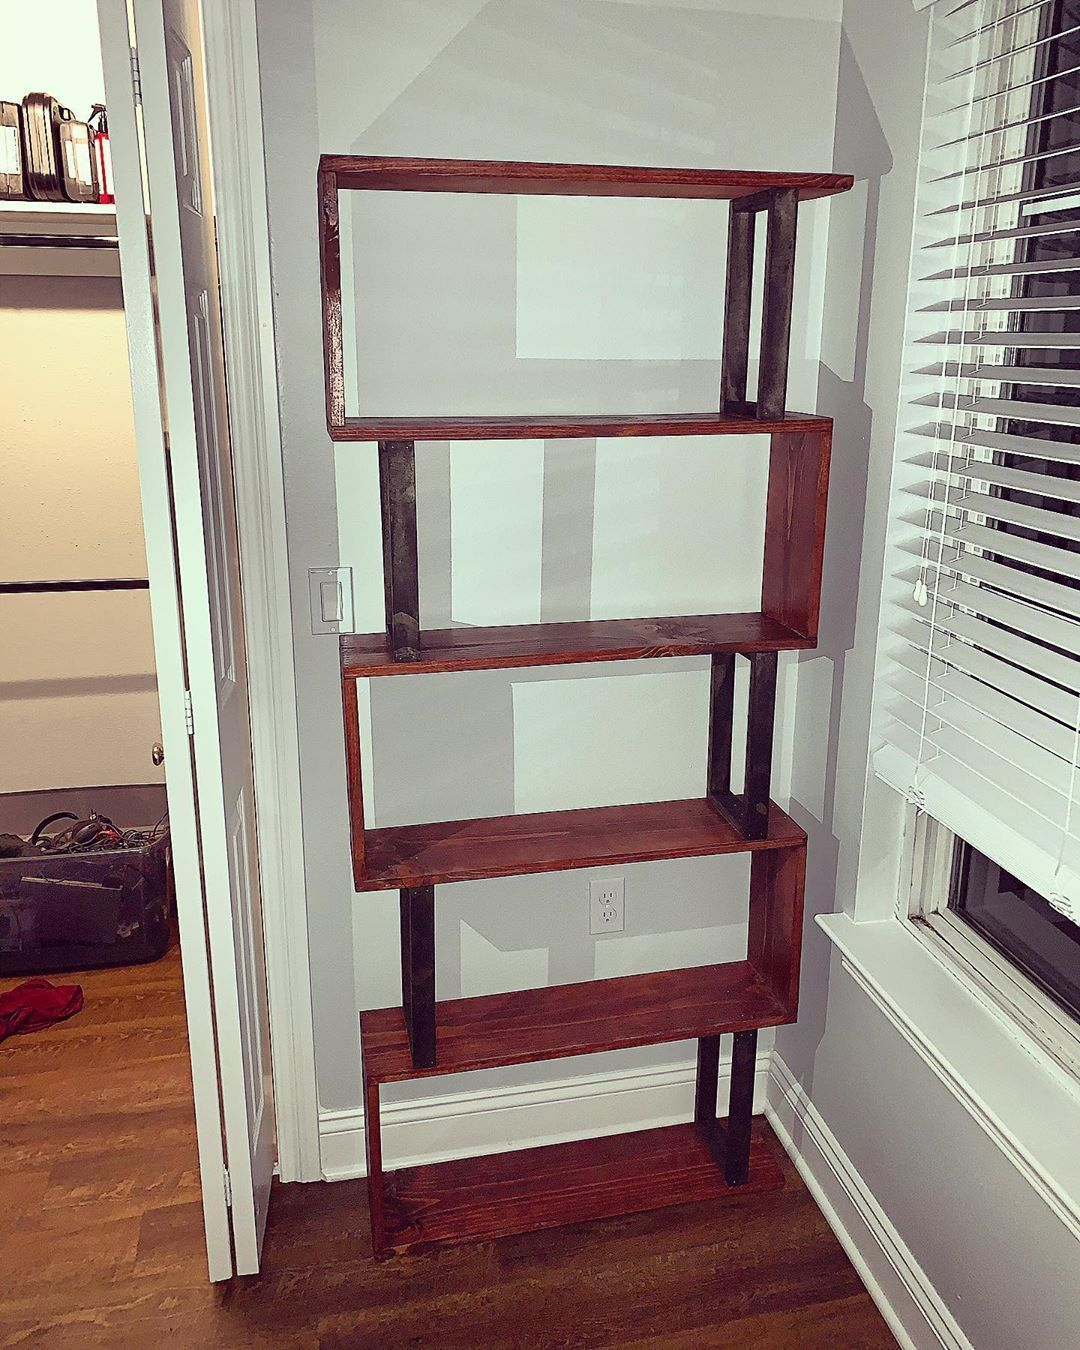 I had a friend who wanted a sleek, modern bookcase to fit this space in his apartment. The contrast between the ebony squares and honey shelves really make this piece pop. I really had a great time making this and my friend even gave a helping hand too  #woodworking #wood #handmade #woodwork #diy #design #art #woodworker #interiordesign #woodart #furniture #carpentry #homedecor #woodshop #woodcraft #wooddesign #carpenter #wooden #woodturning #maker #woodcarving #handcrafted #architecture #interi